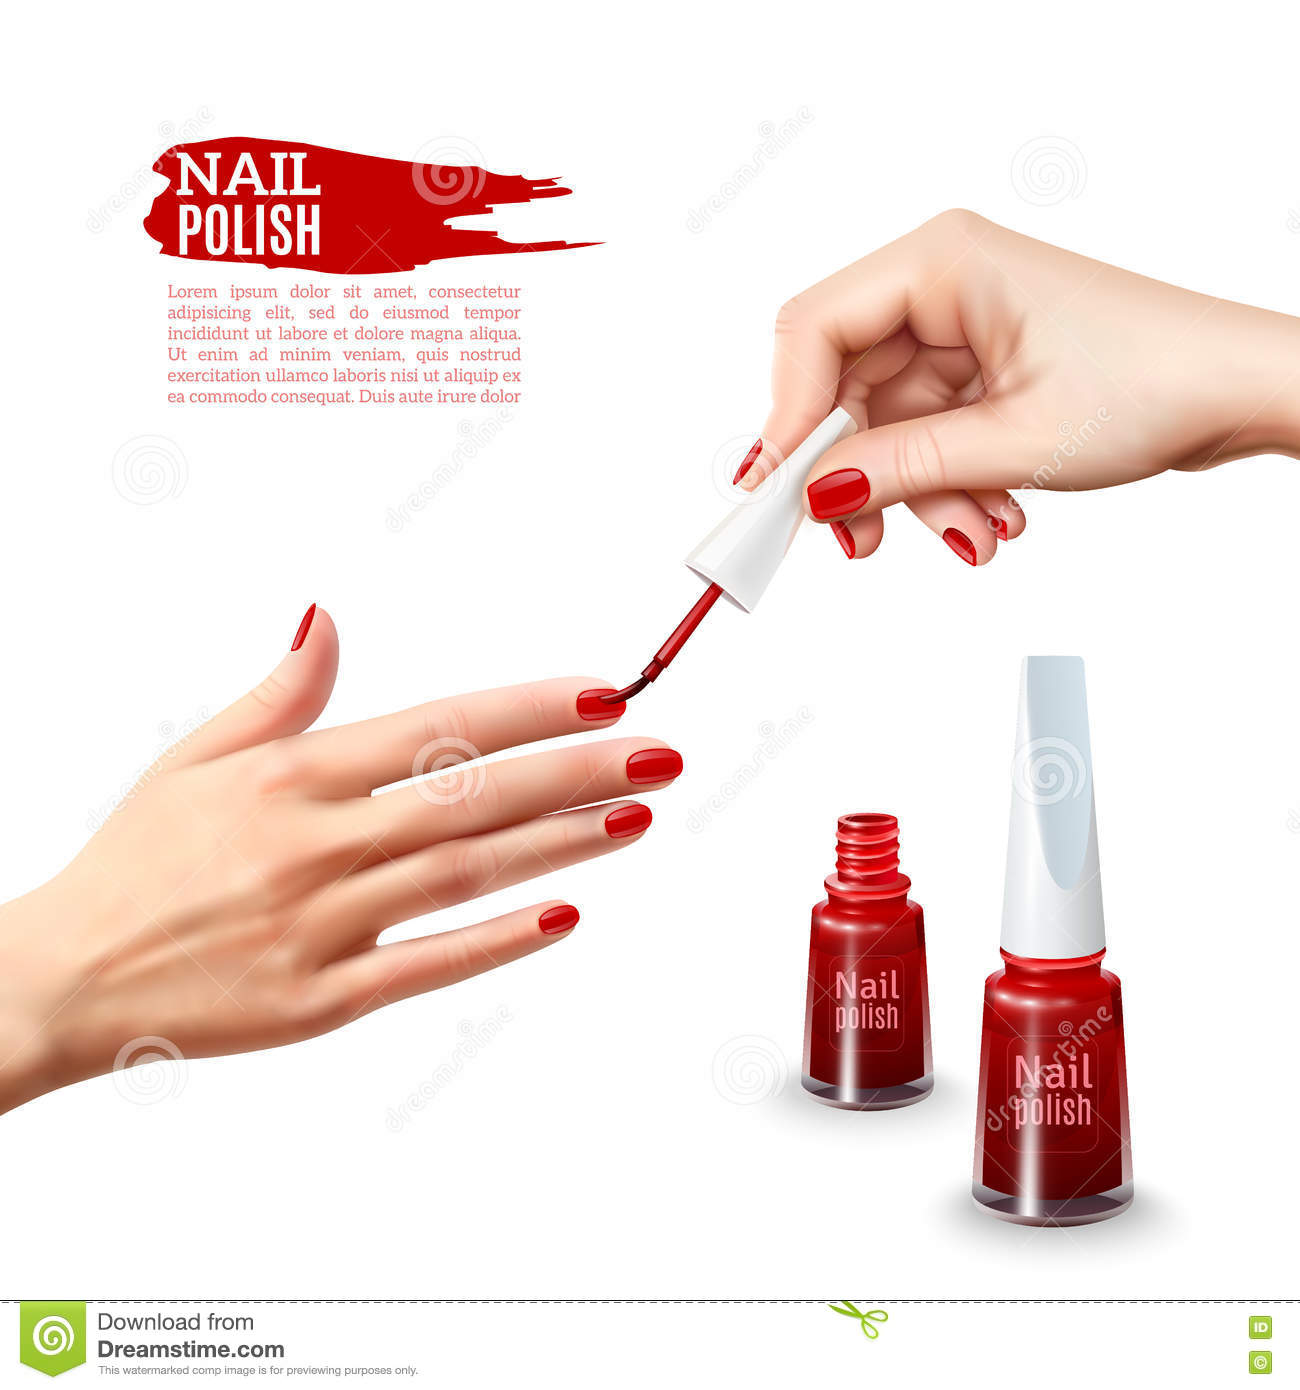 Free Manicure Beauty Hands Makeover: Manicure Nail Polish Hands Realistic Poster Stock Vector